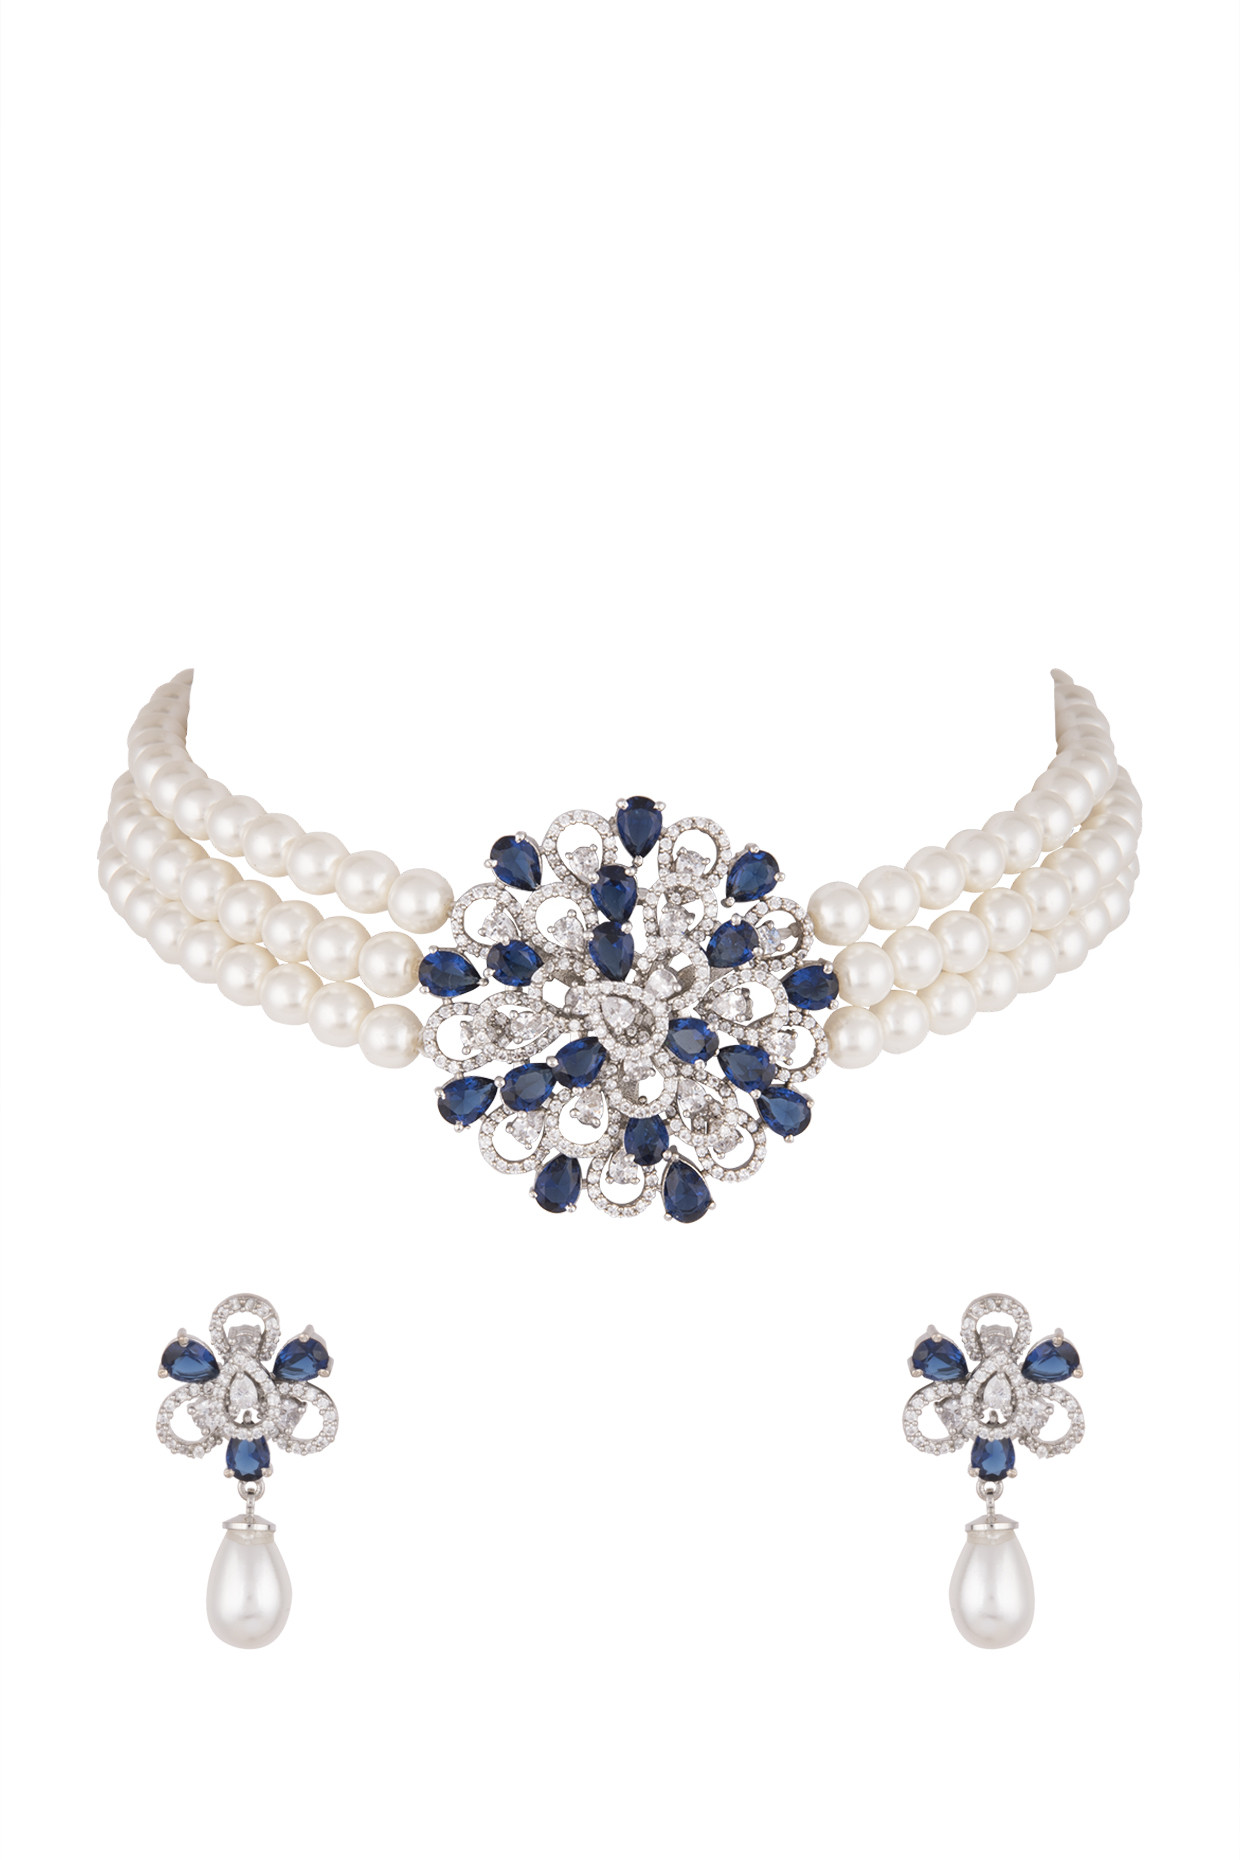 White Finish Faux Diamond & Pearl Necklace Set With Ring by Aster